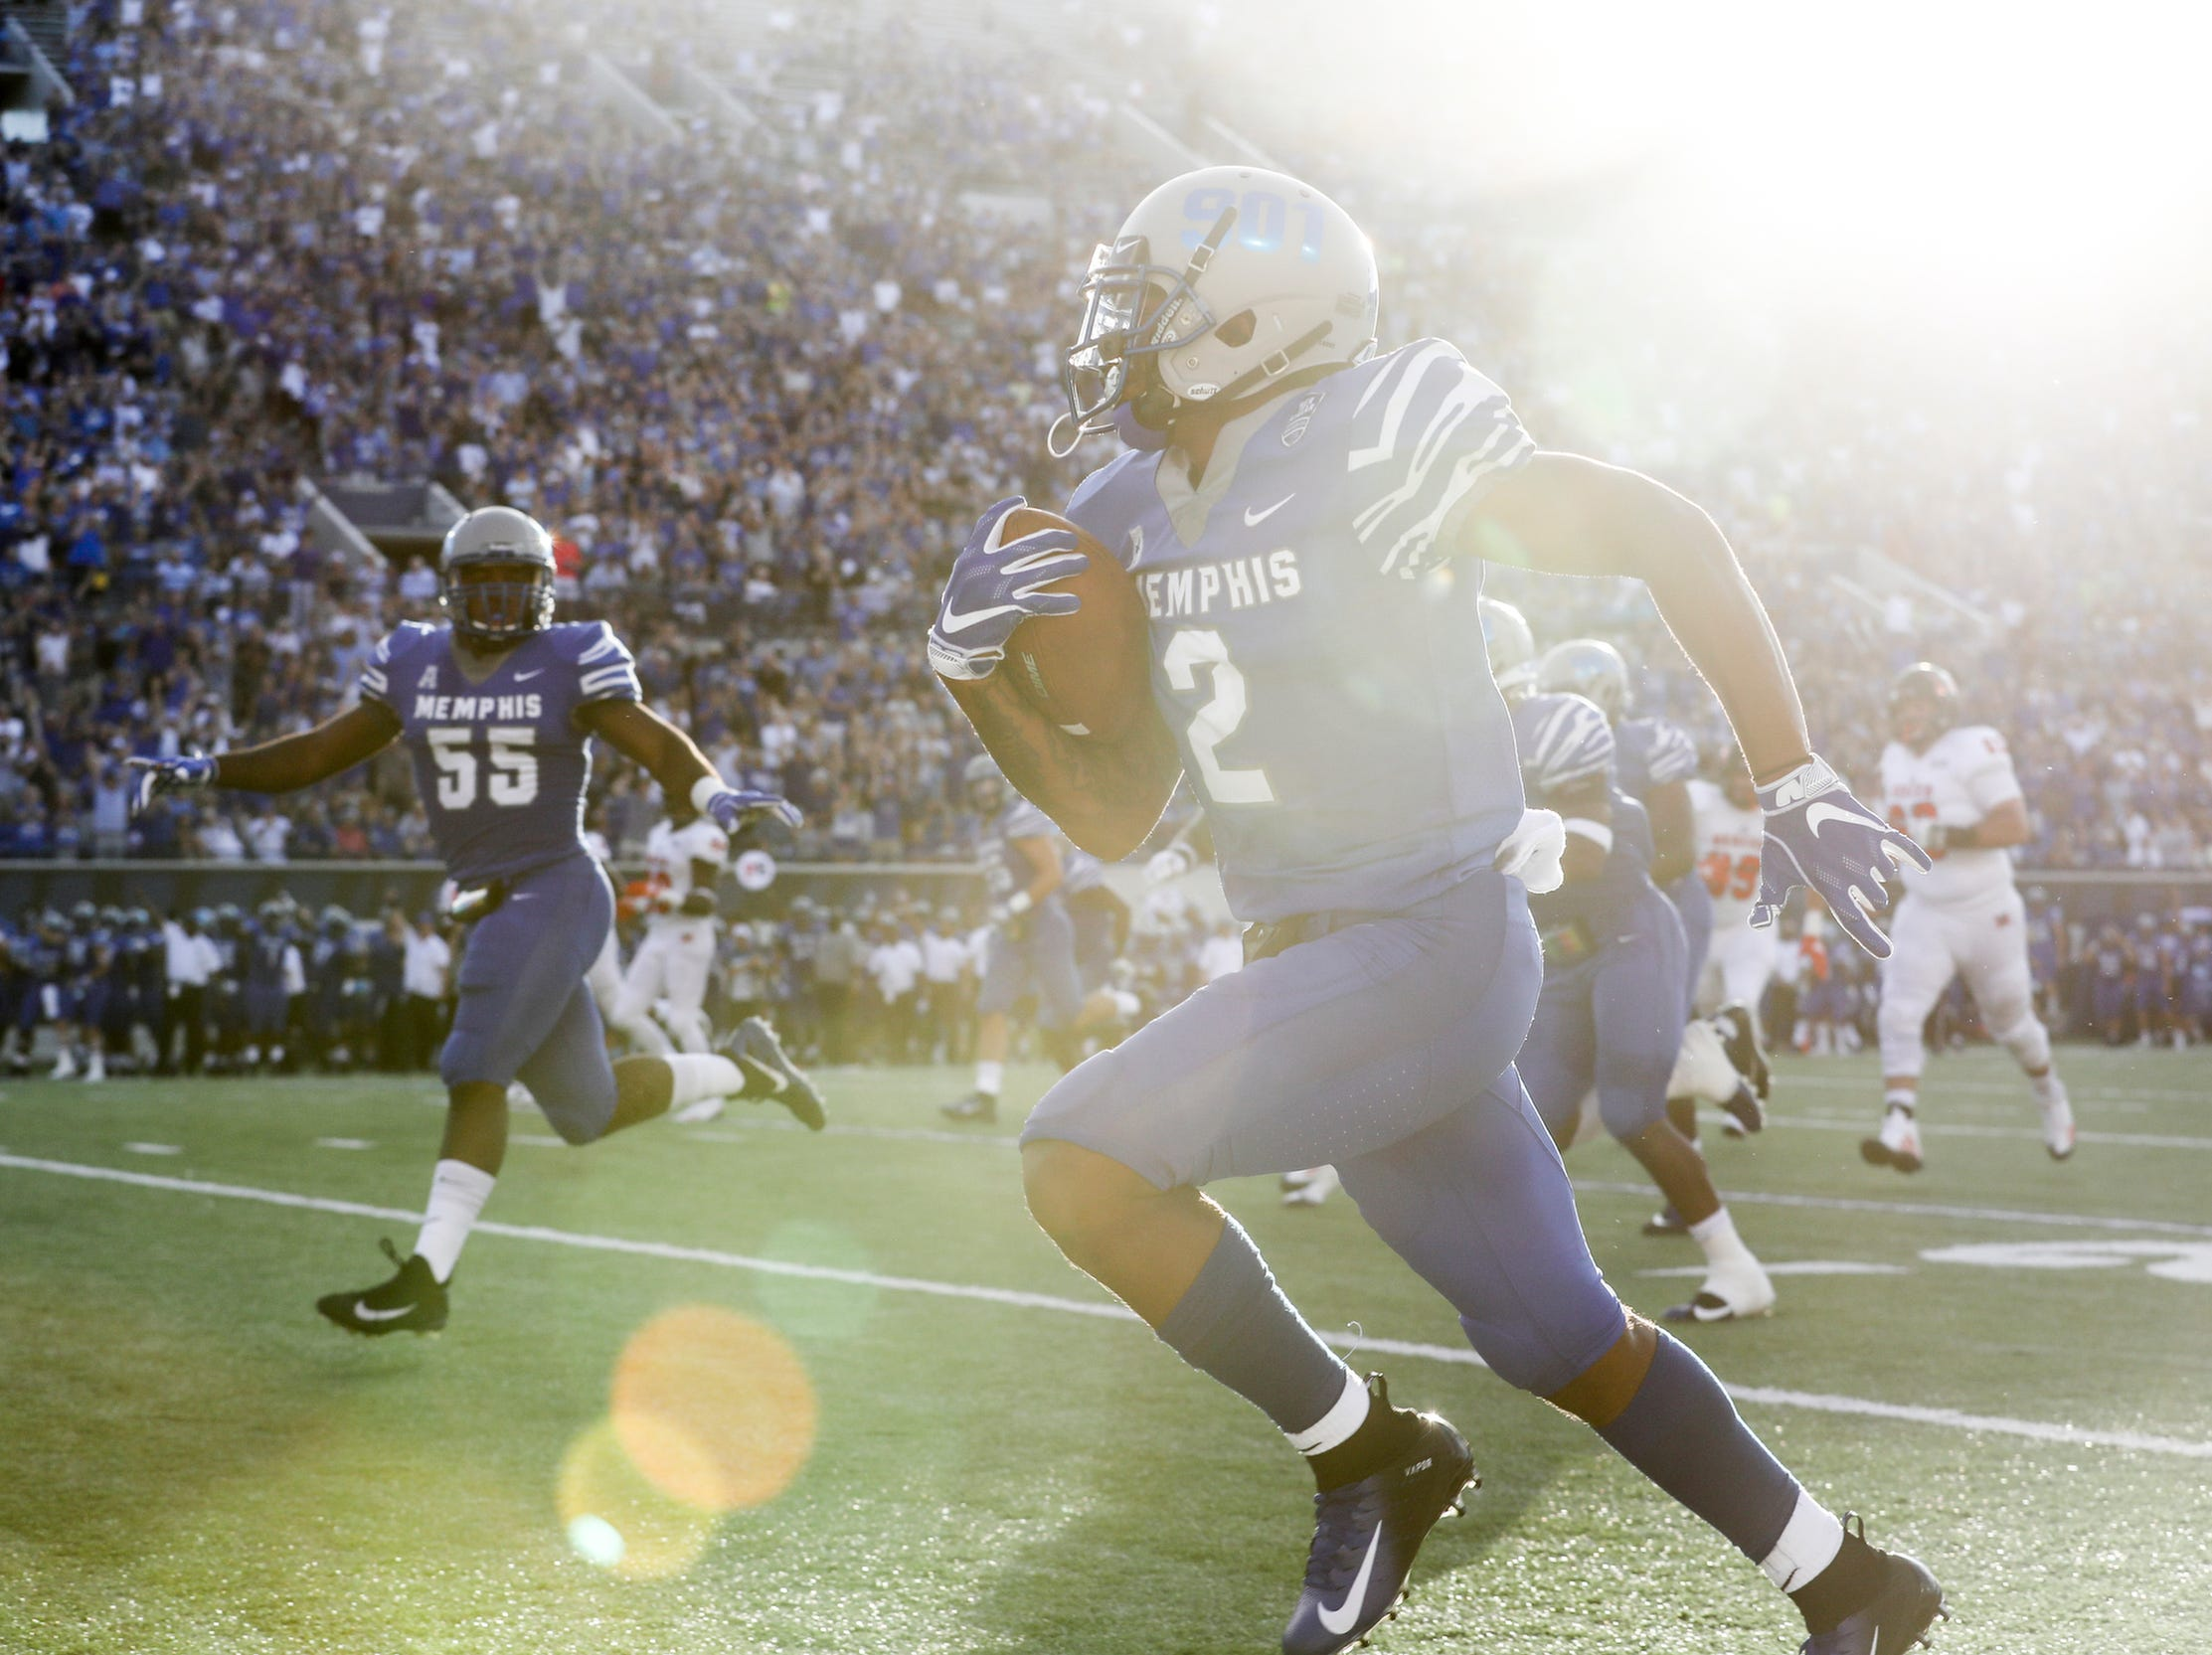 September 01 2018 - Memphis Tigers' TJ Carter runs in for a touchdown during Saturday's game versus Mercer at the Liberty Bowl Memorial Stadium.